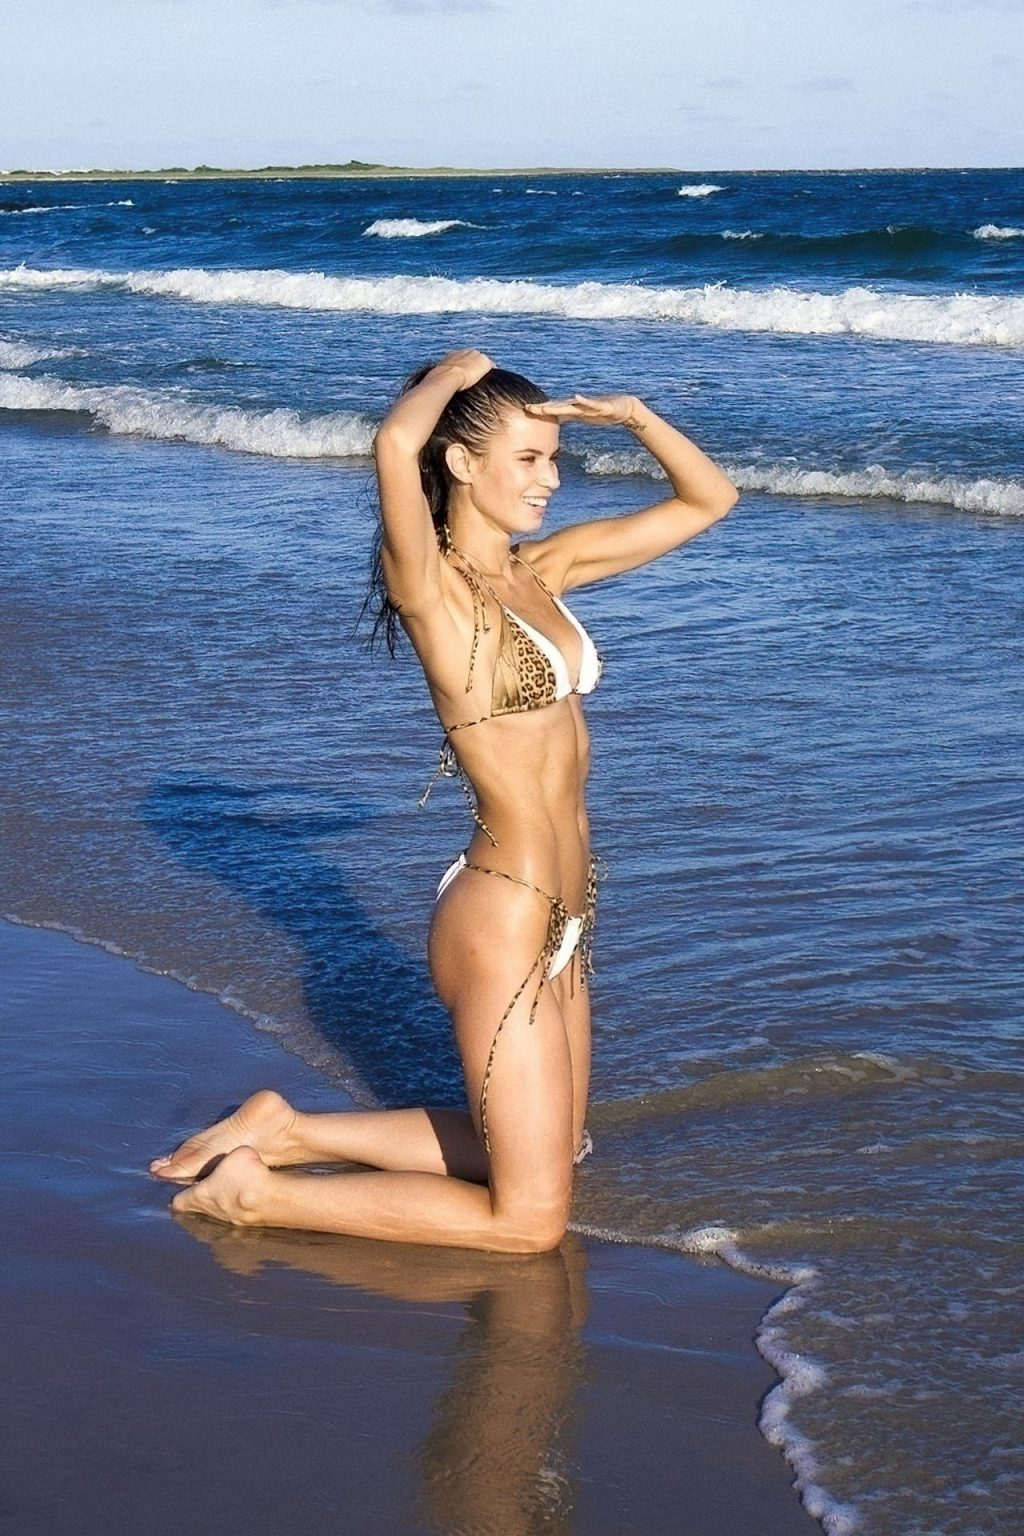 Michaela Vybohova Strikes Up a Very Sexy Pose on Flying Point Beach in the Hamptons (19 Photos)